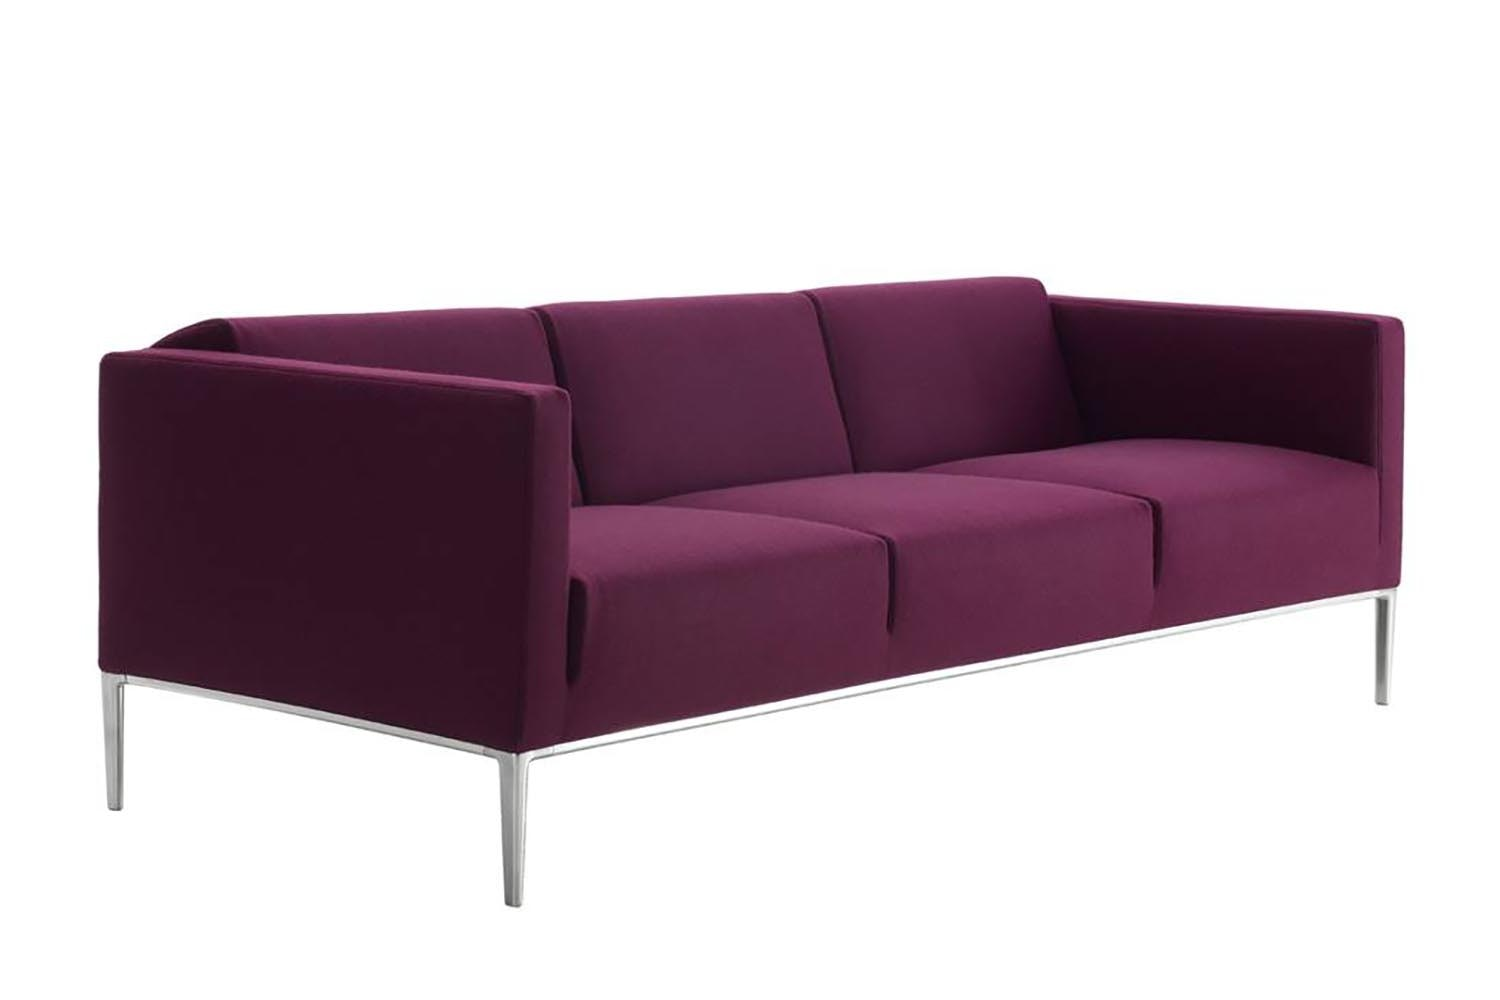 Project Jean Sofa by Antonio Citterio for B&B Italia Project